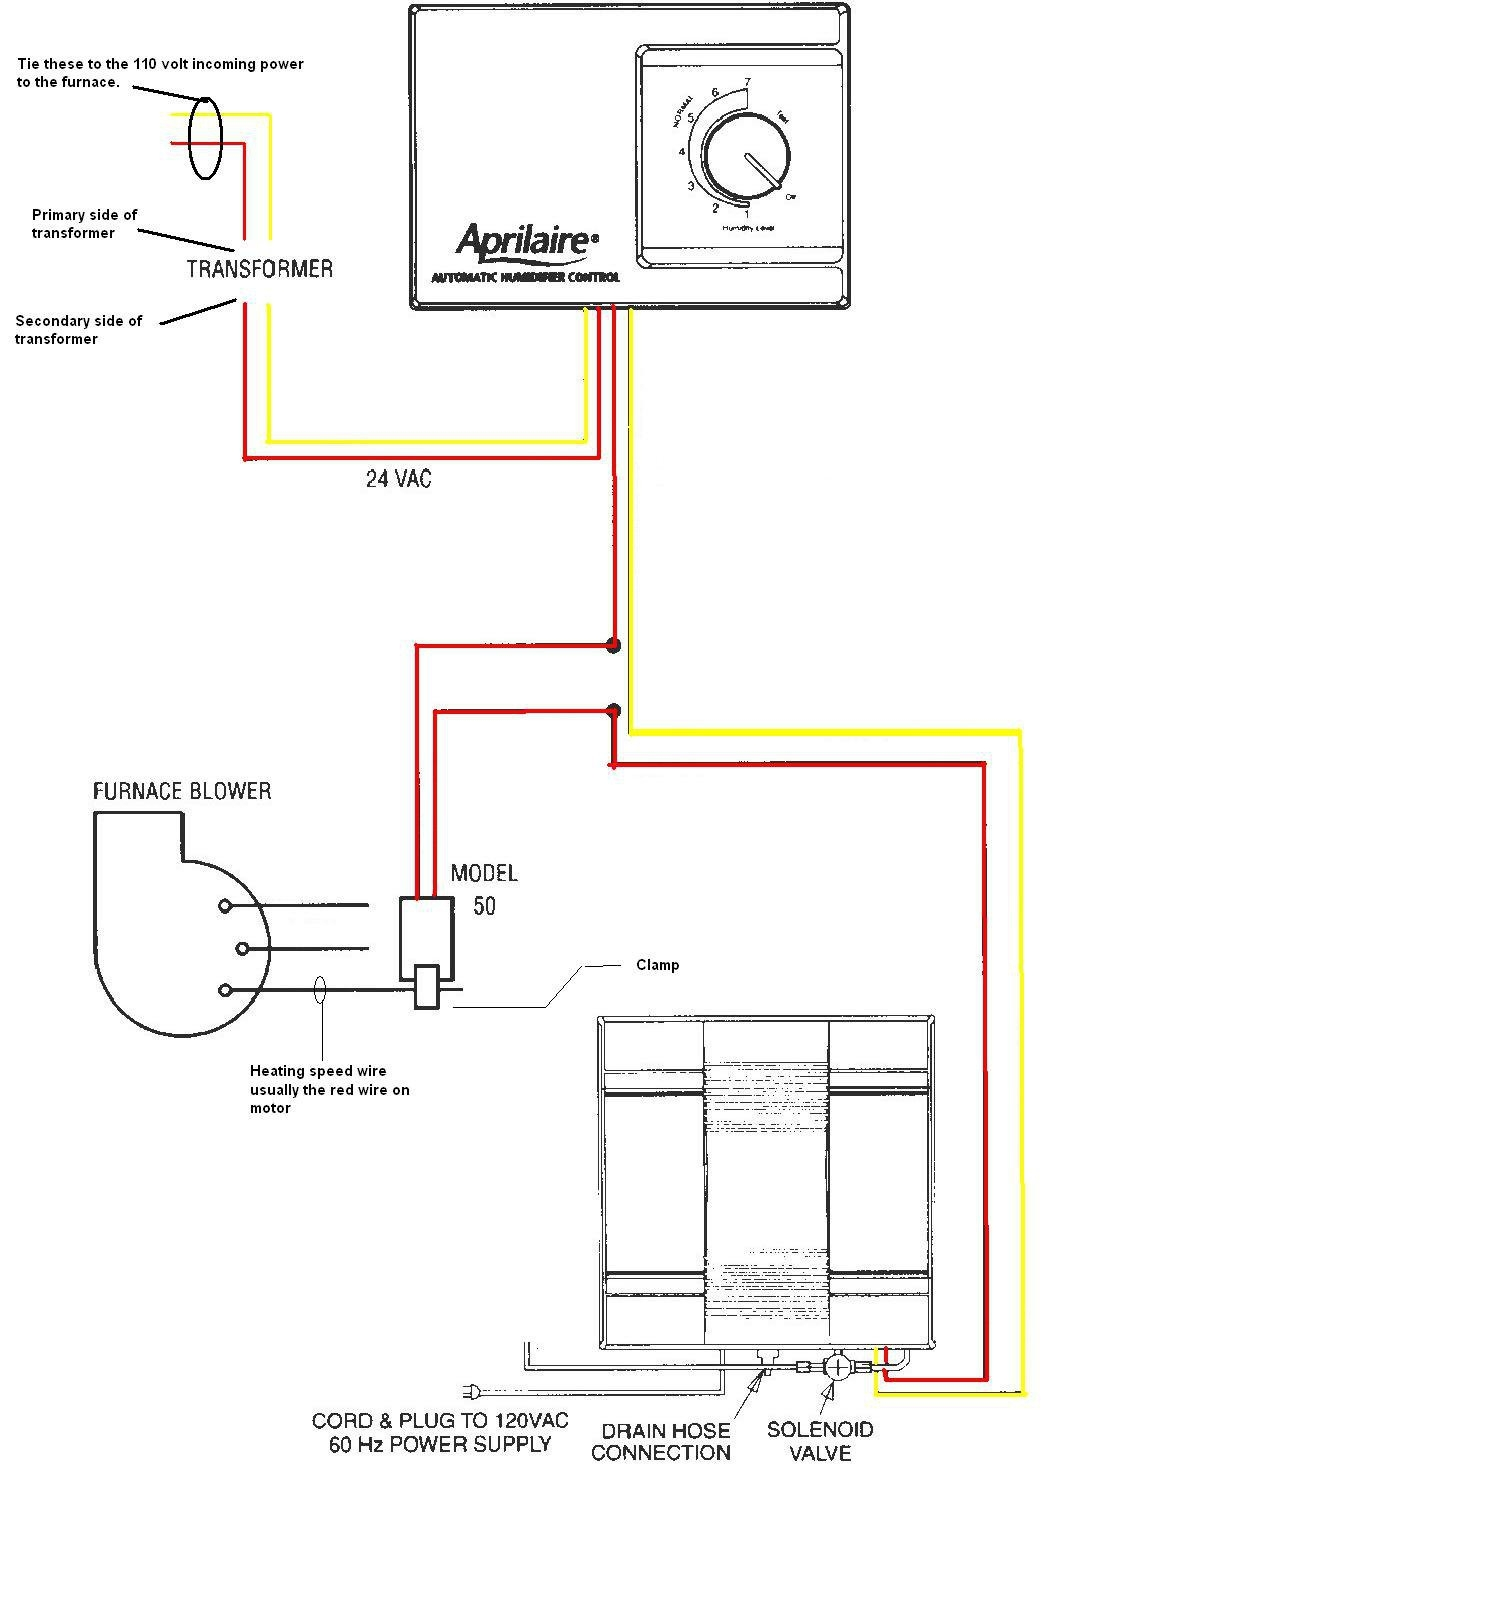 u 92a u wiring diagram Collection-honeywell power humidifier wiring diagram Collection Ecobee Wiring Diagram Fresh Ecobee Wiring Diagram Beautiful Best DOWNLOAD Wiring Diagram 20-k